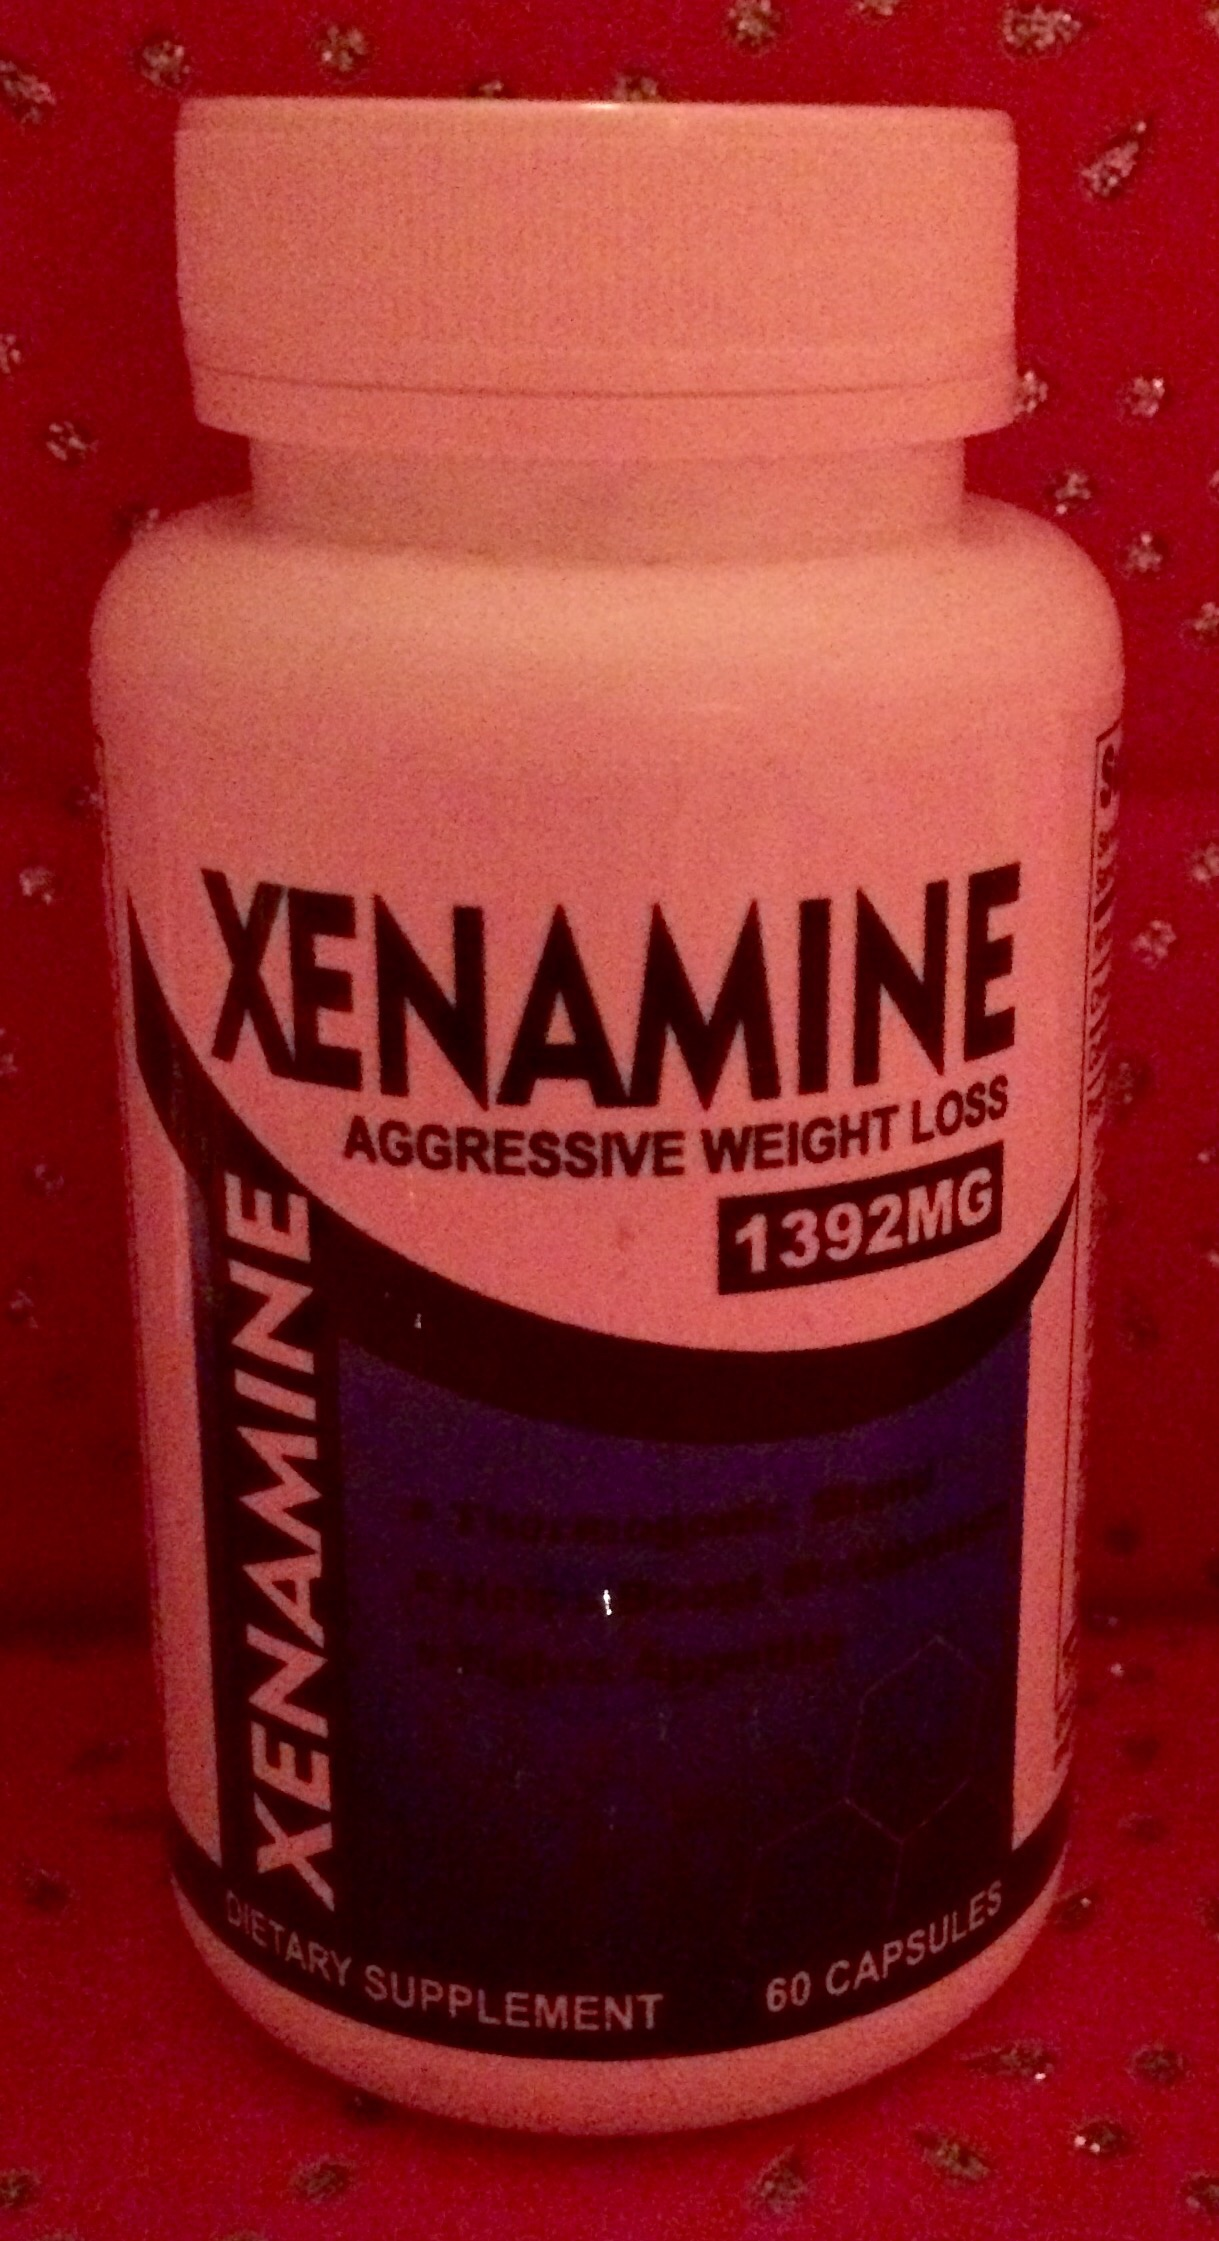 Fighting The Weight Gain From Olanzapine: XENAMINE Diet